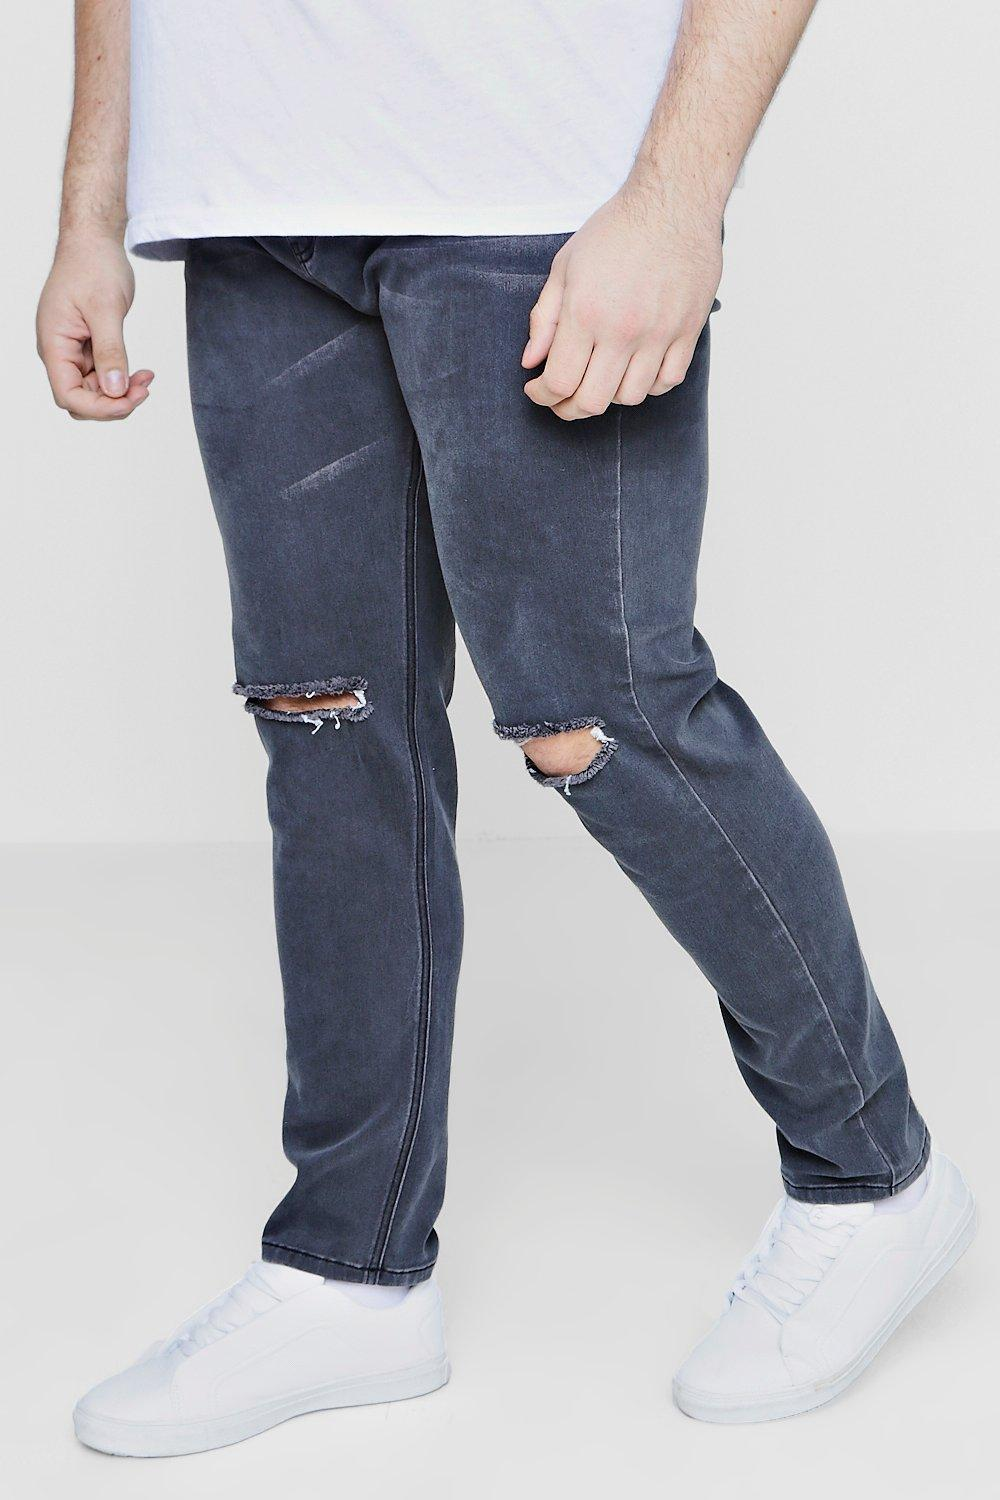 05c7fae44178f Boohoo Big And Tall Slim Fit Ripped Knee Jeans in Blue for Men - Lyst